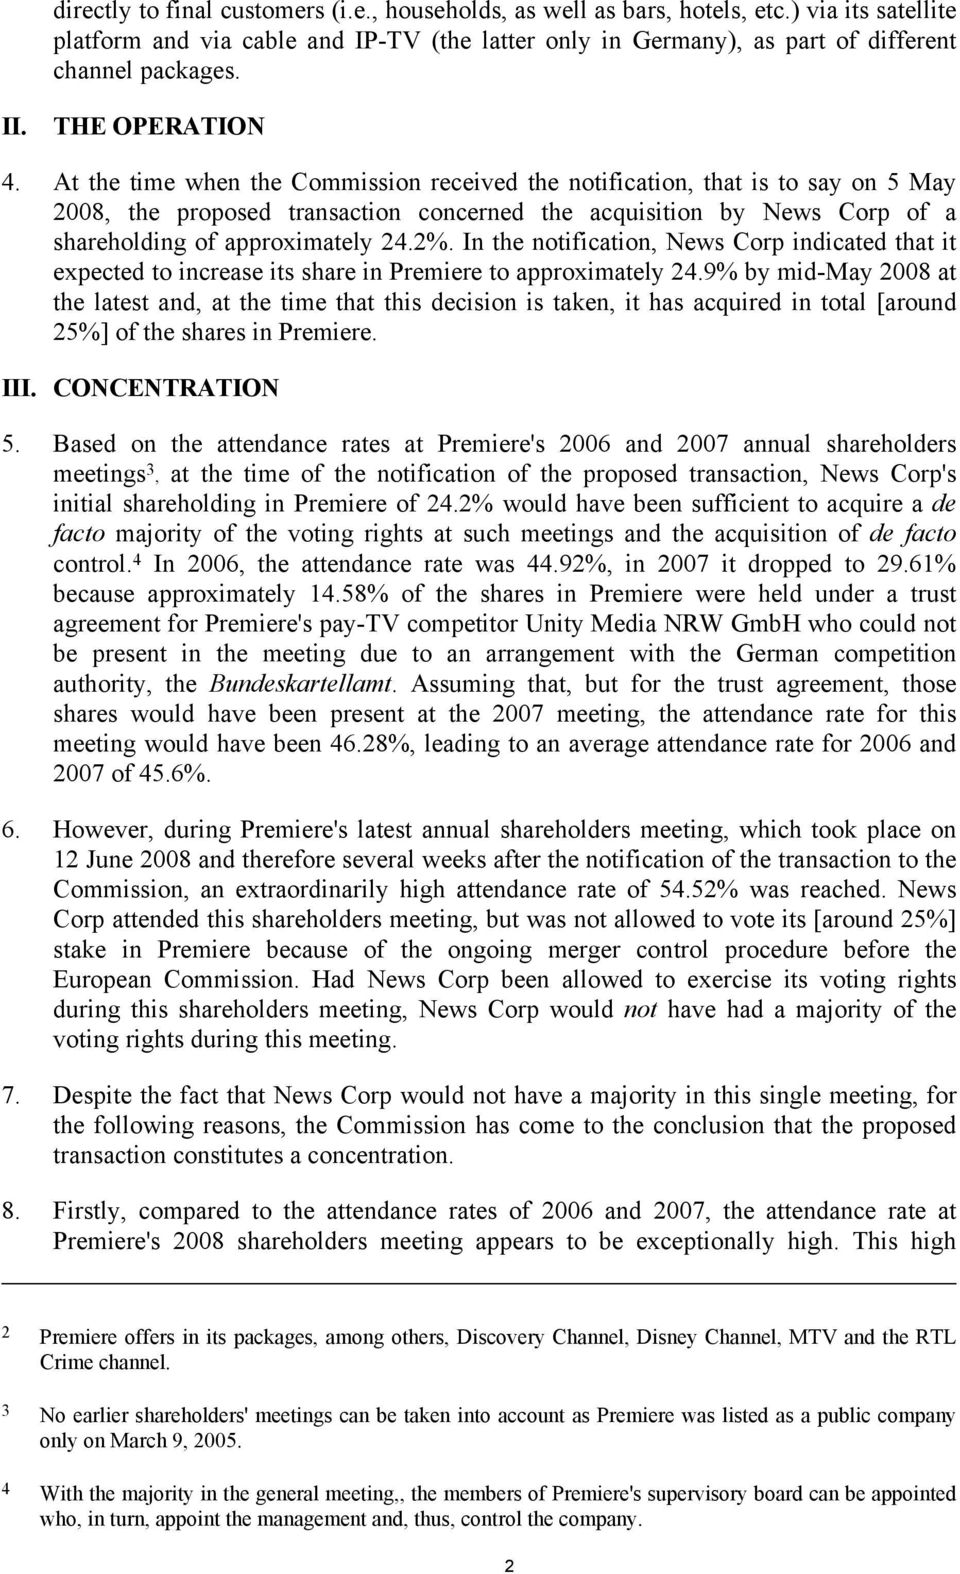 At the time when the Commission received the notification, that is to say on 5 May 2008, the proposed transaction concerned the acquisition by News Corp of a shareholding of approximately 24.2%.